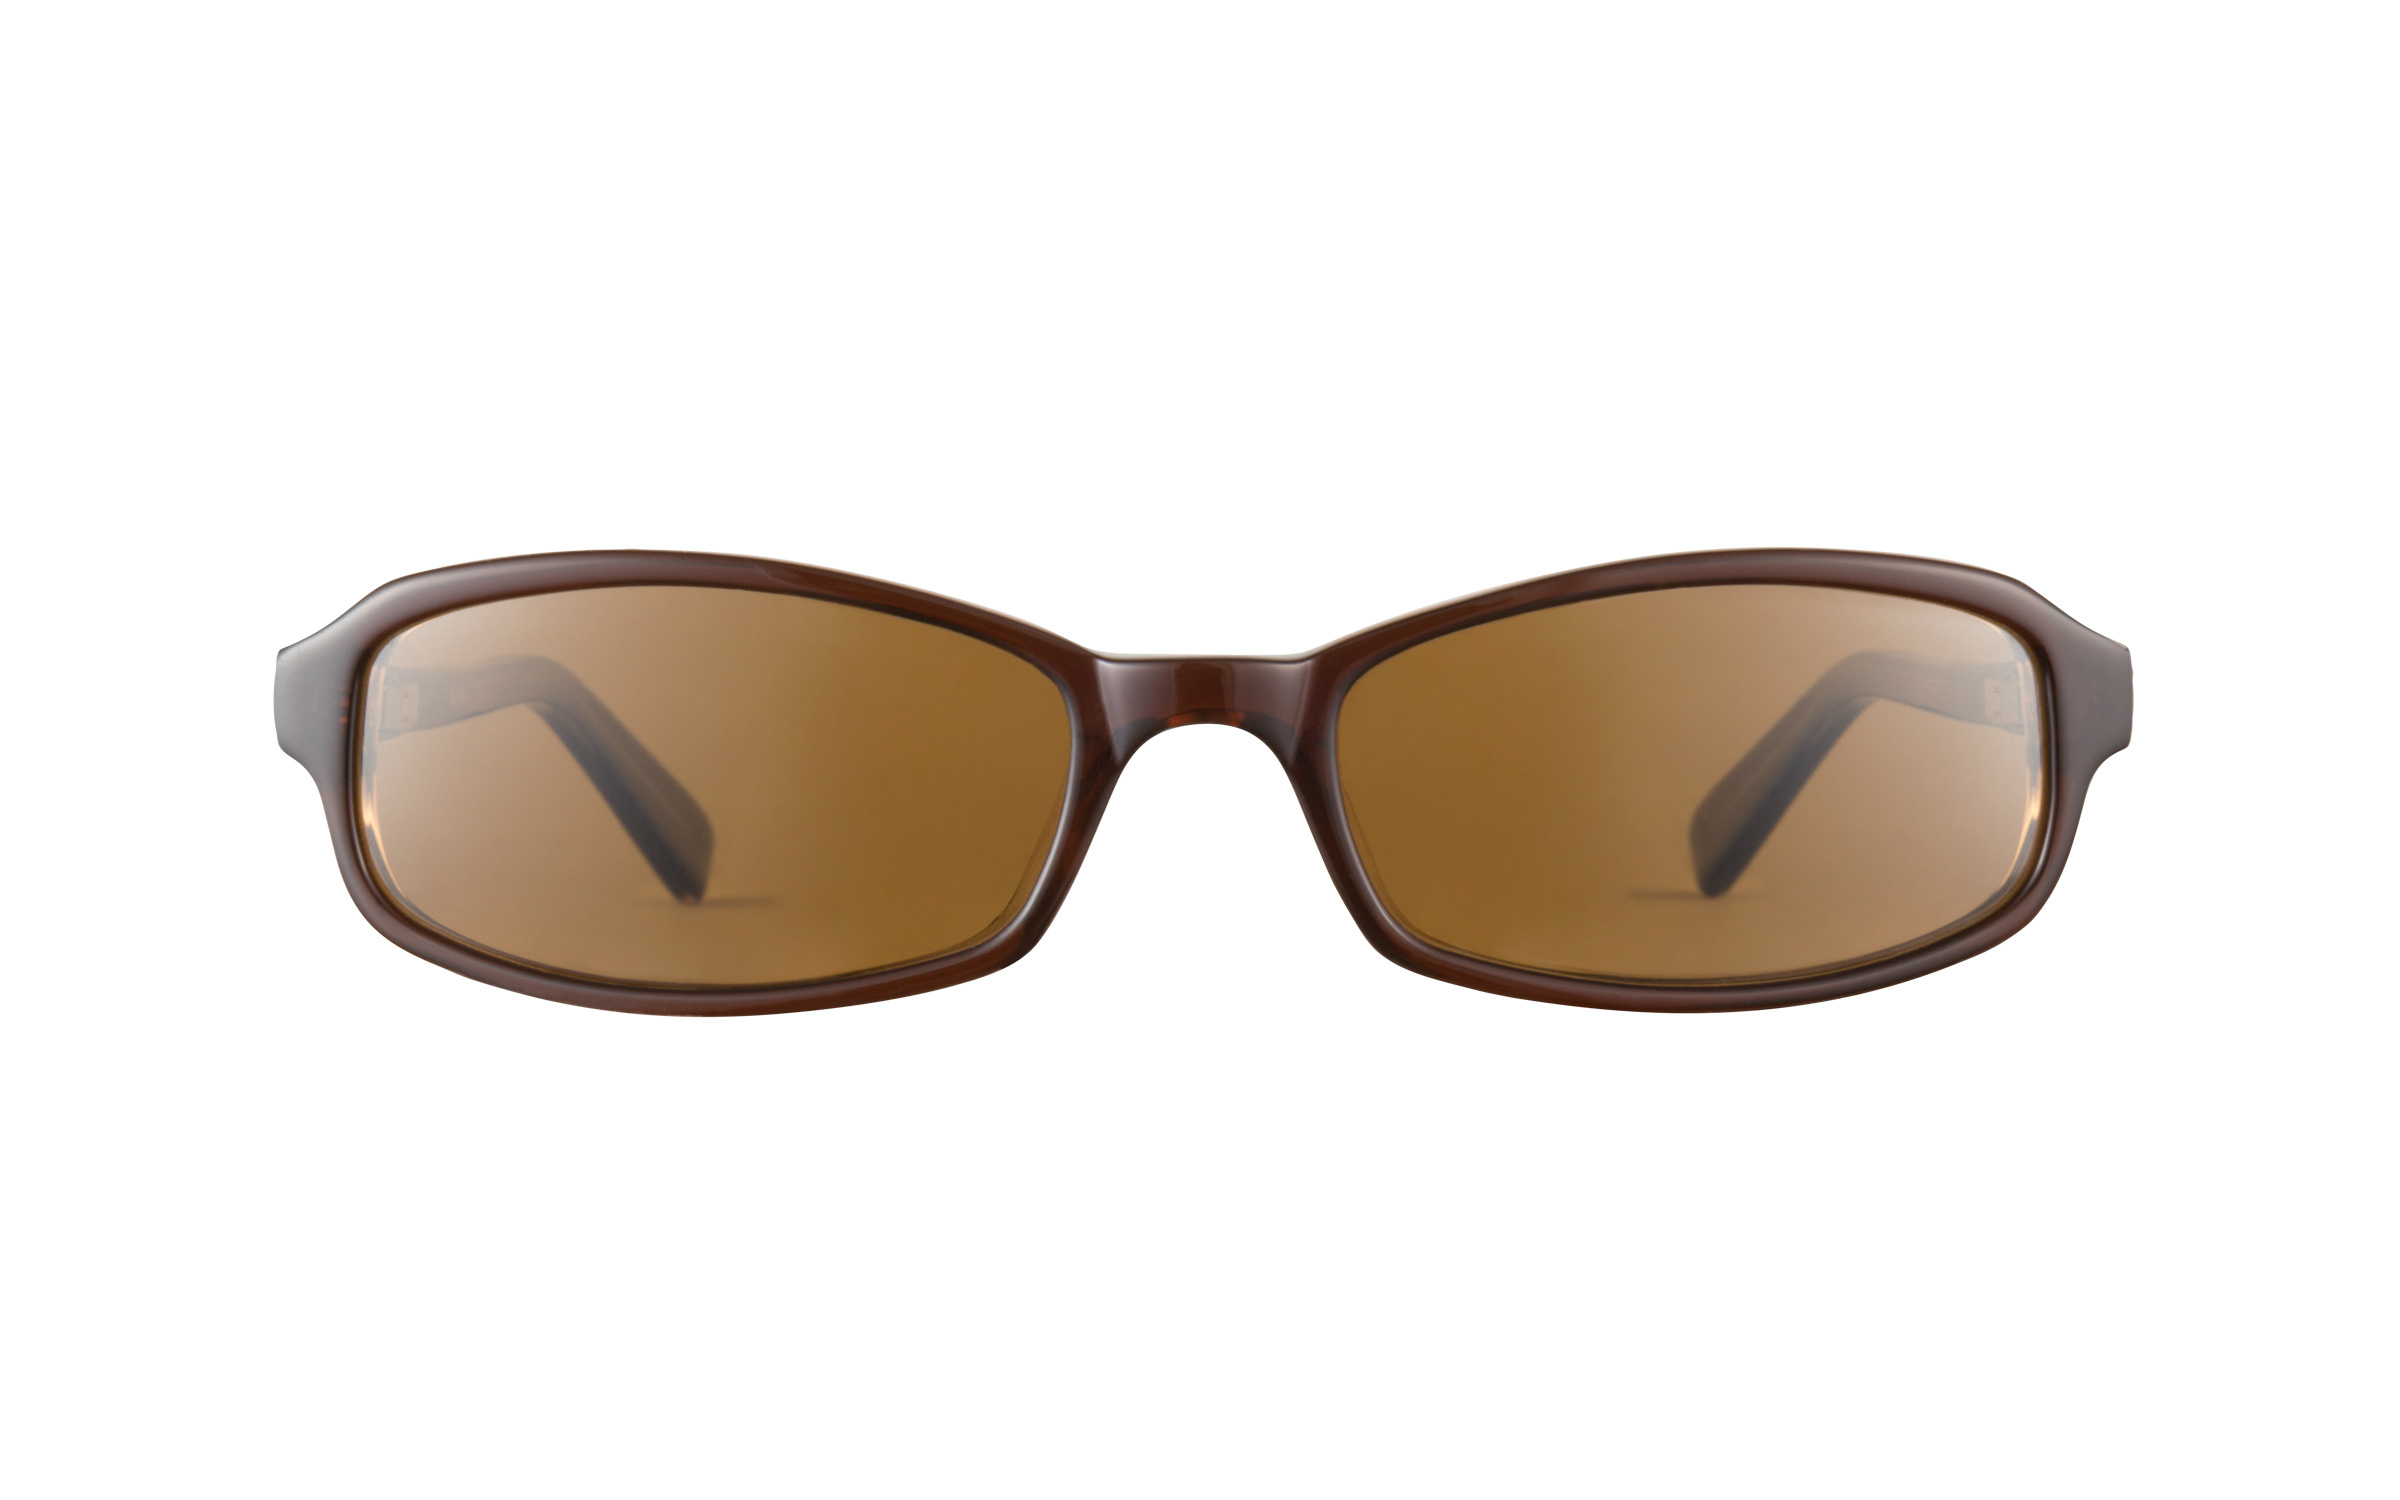 Zooventure_Kids_Sunglasses_Brown_Acetate_Sunglasses__Clearly_Glasses_Online